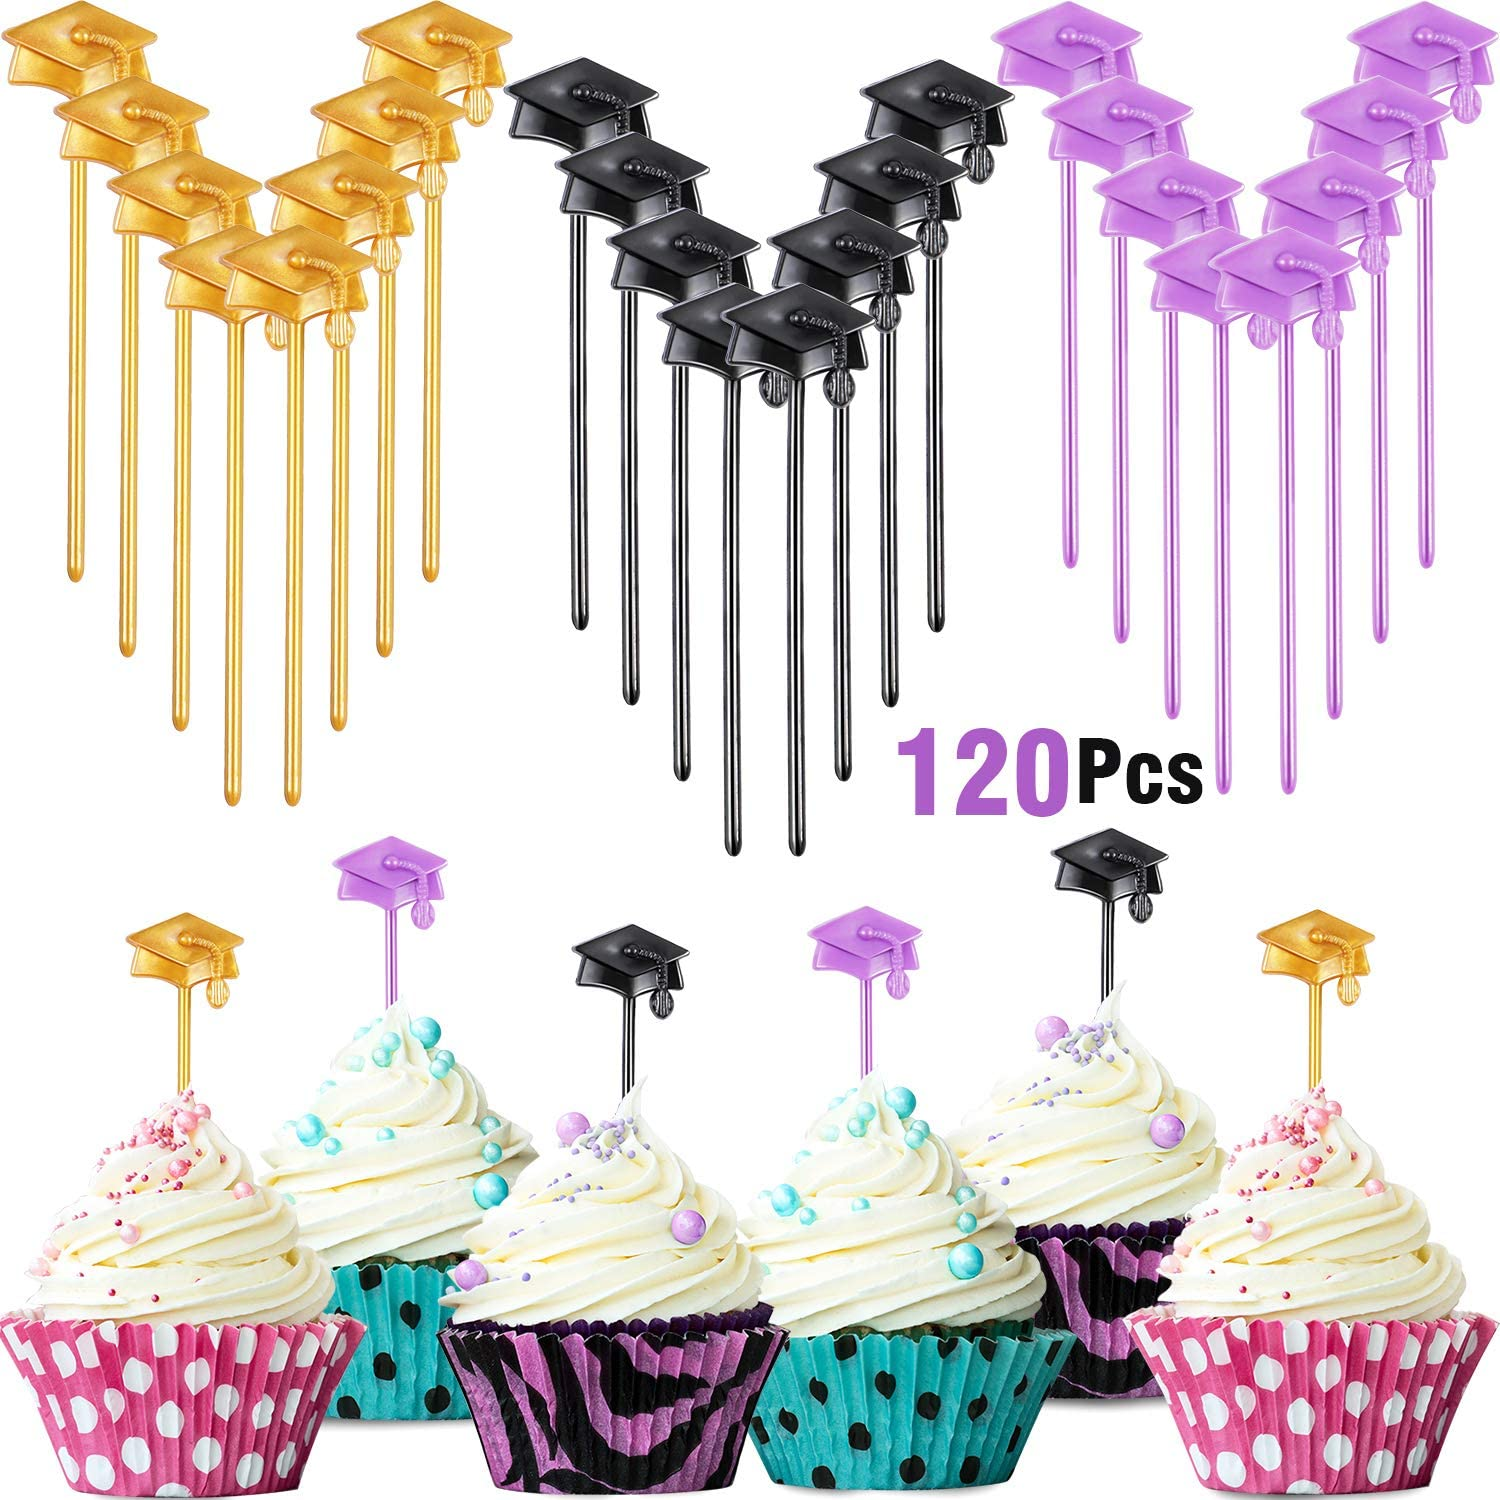 120 Pieces Graduation Cupcake Toppers Plastic Graduation Food Appetizer Picks Graduation Cake Decorations for Graduation Party Supplies